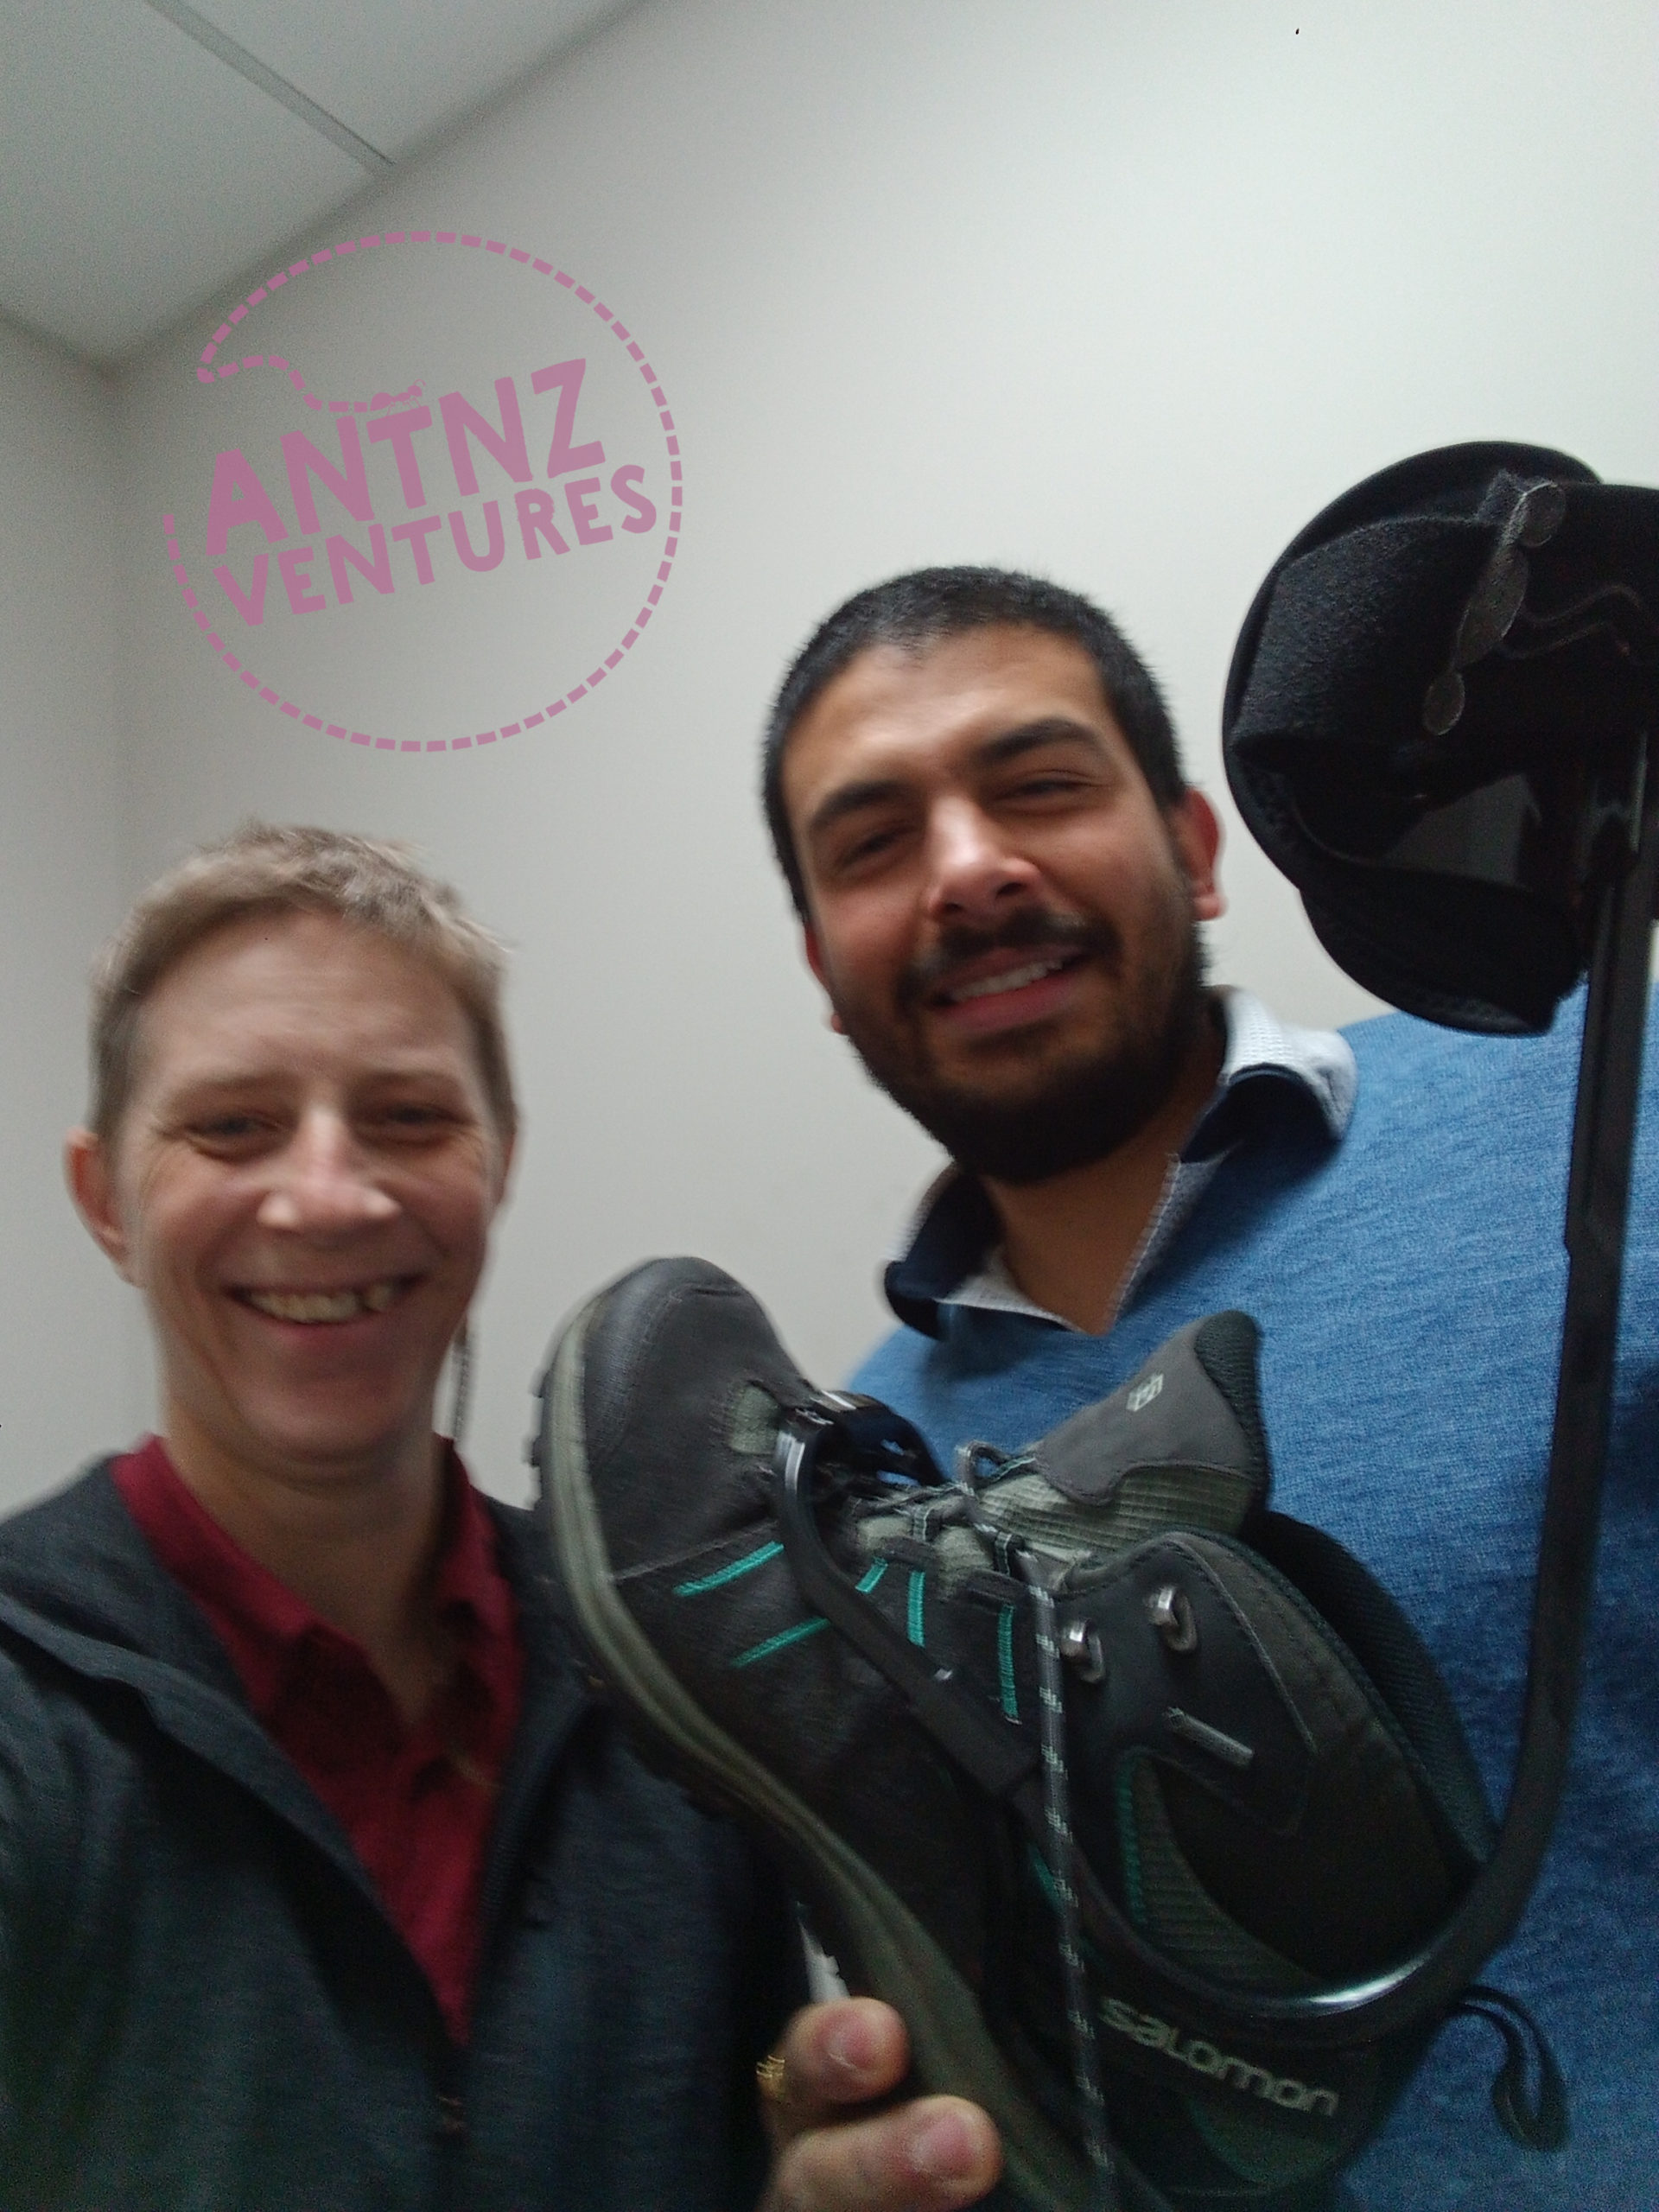 A selfie of Antnz and Arjun from Central Orthotics. Arjun is holding a hiking boot with the TurboMed Extern fitted to it.